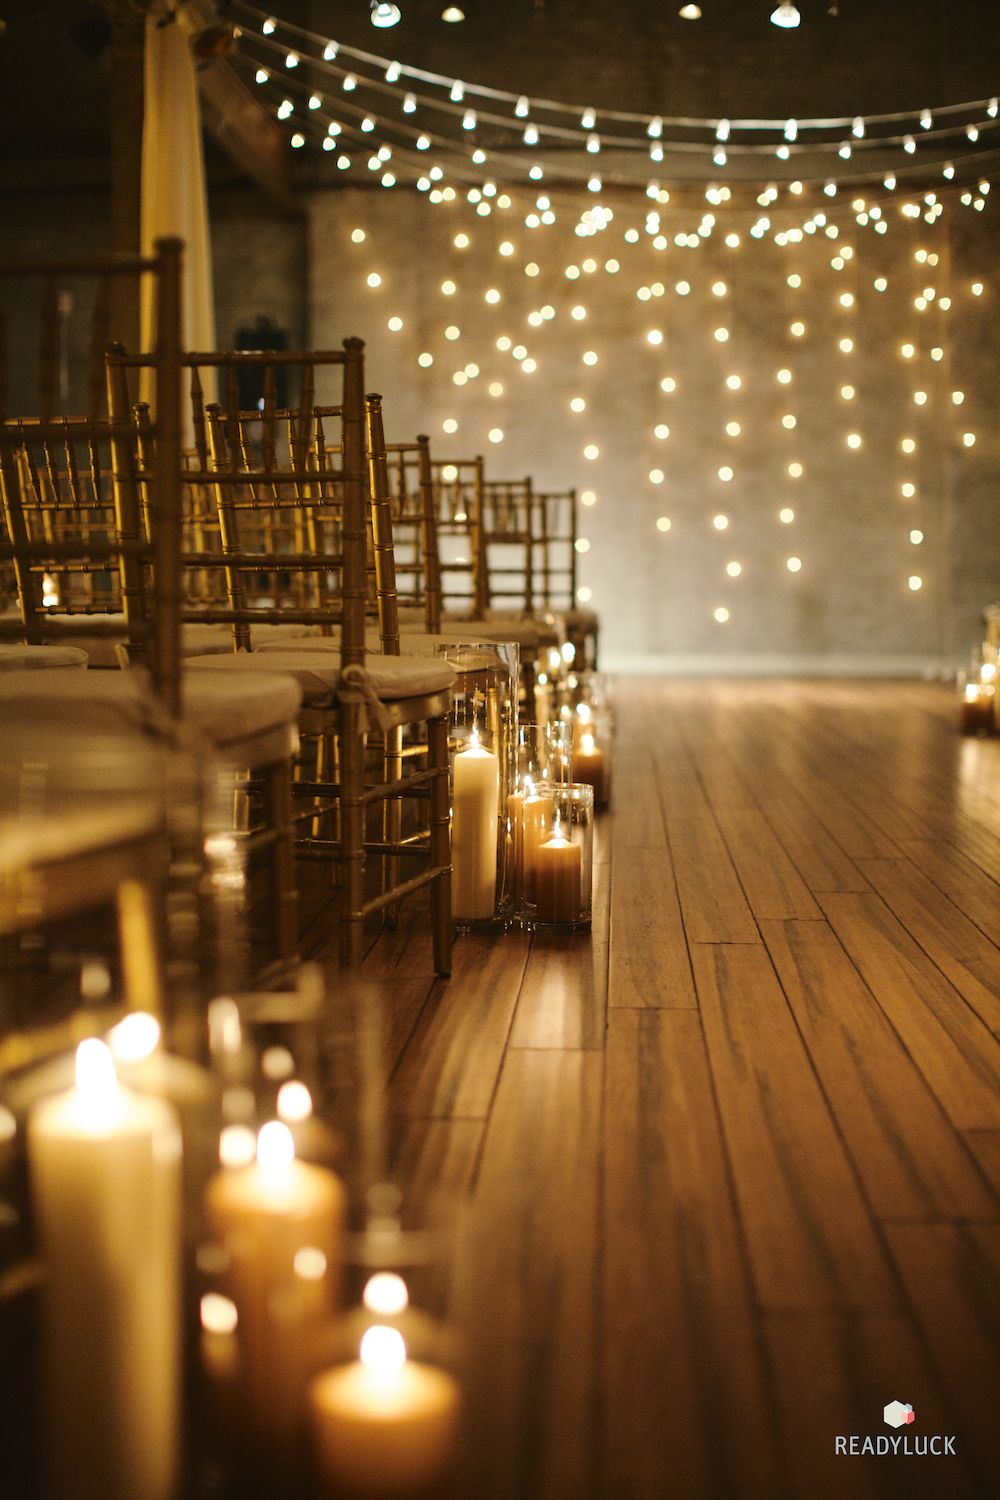 Candlelit Wedding Ceremony With Fairy Lights Lindsay Hite Of Readyluck Brides